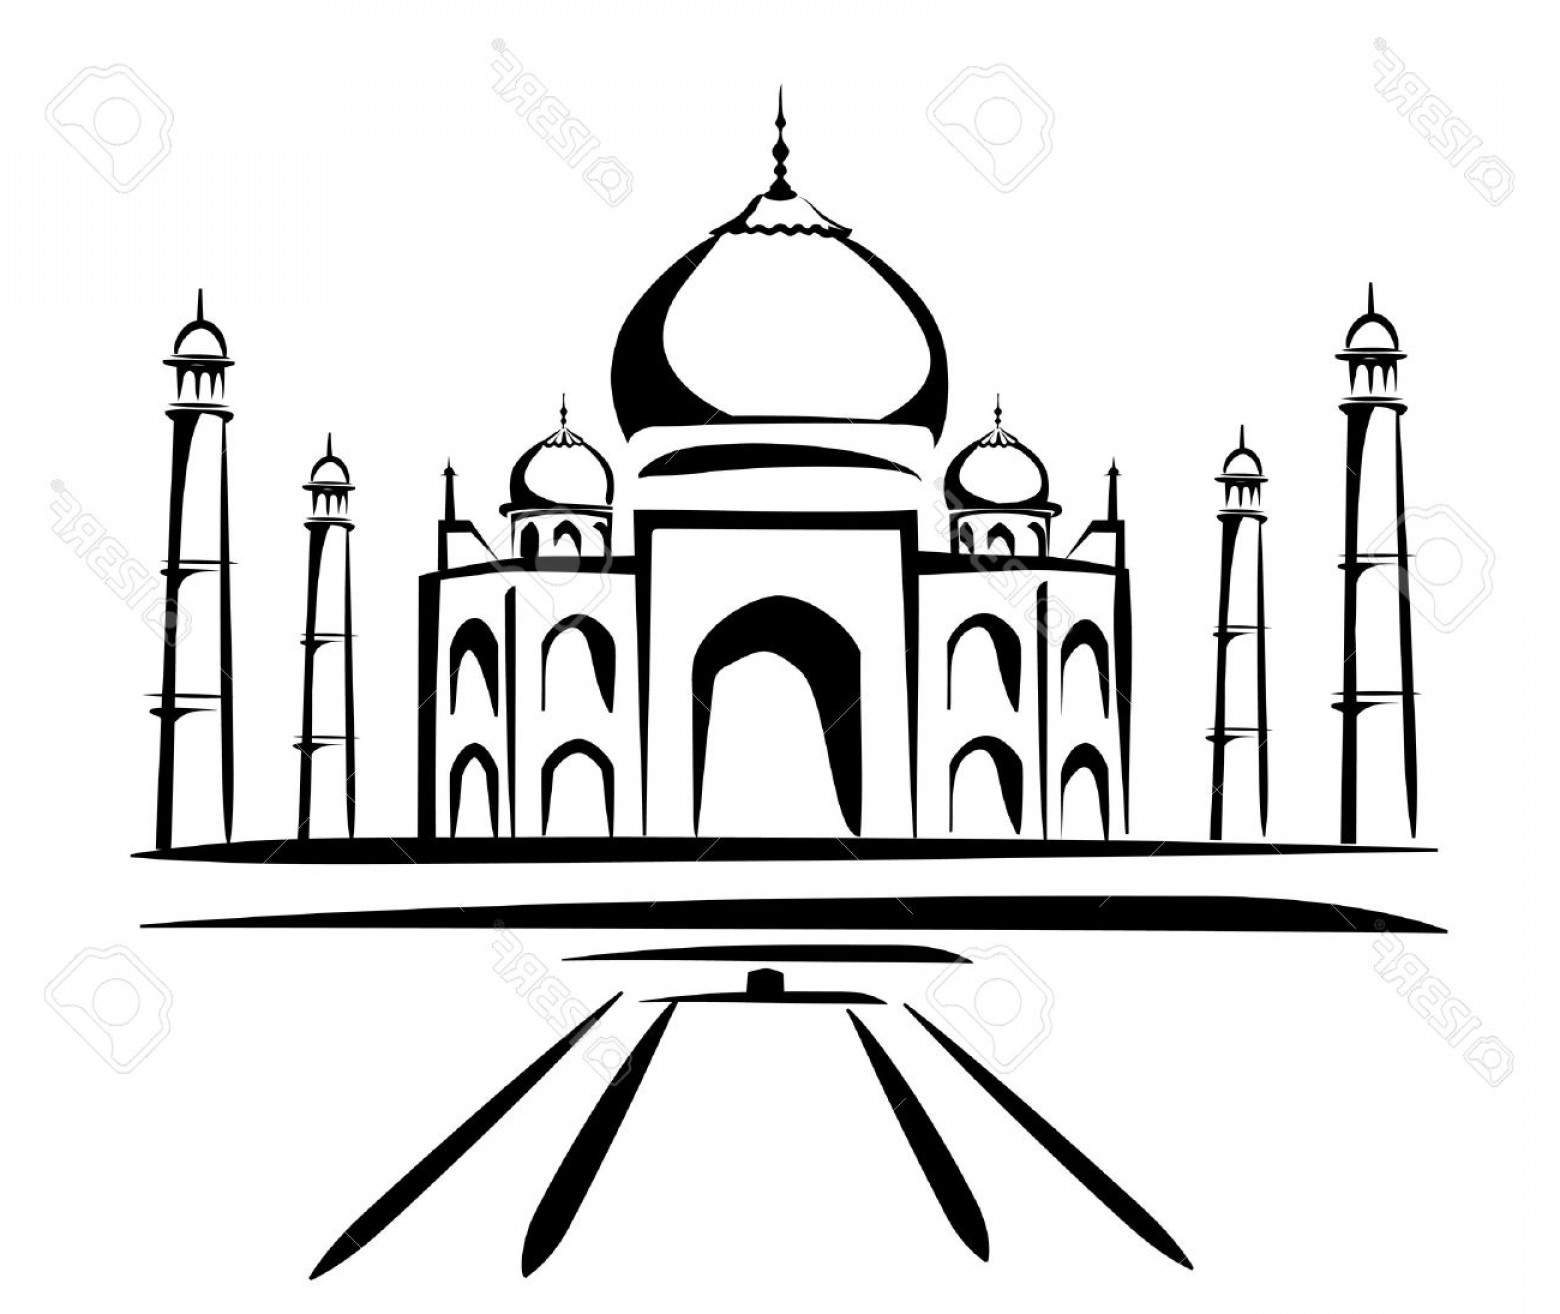 Taj Mahal Vector: Phototaj Mahal Vector Illustration Symbol In Black Lines